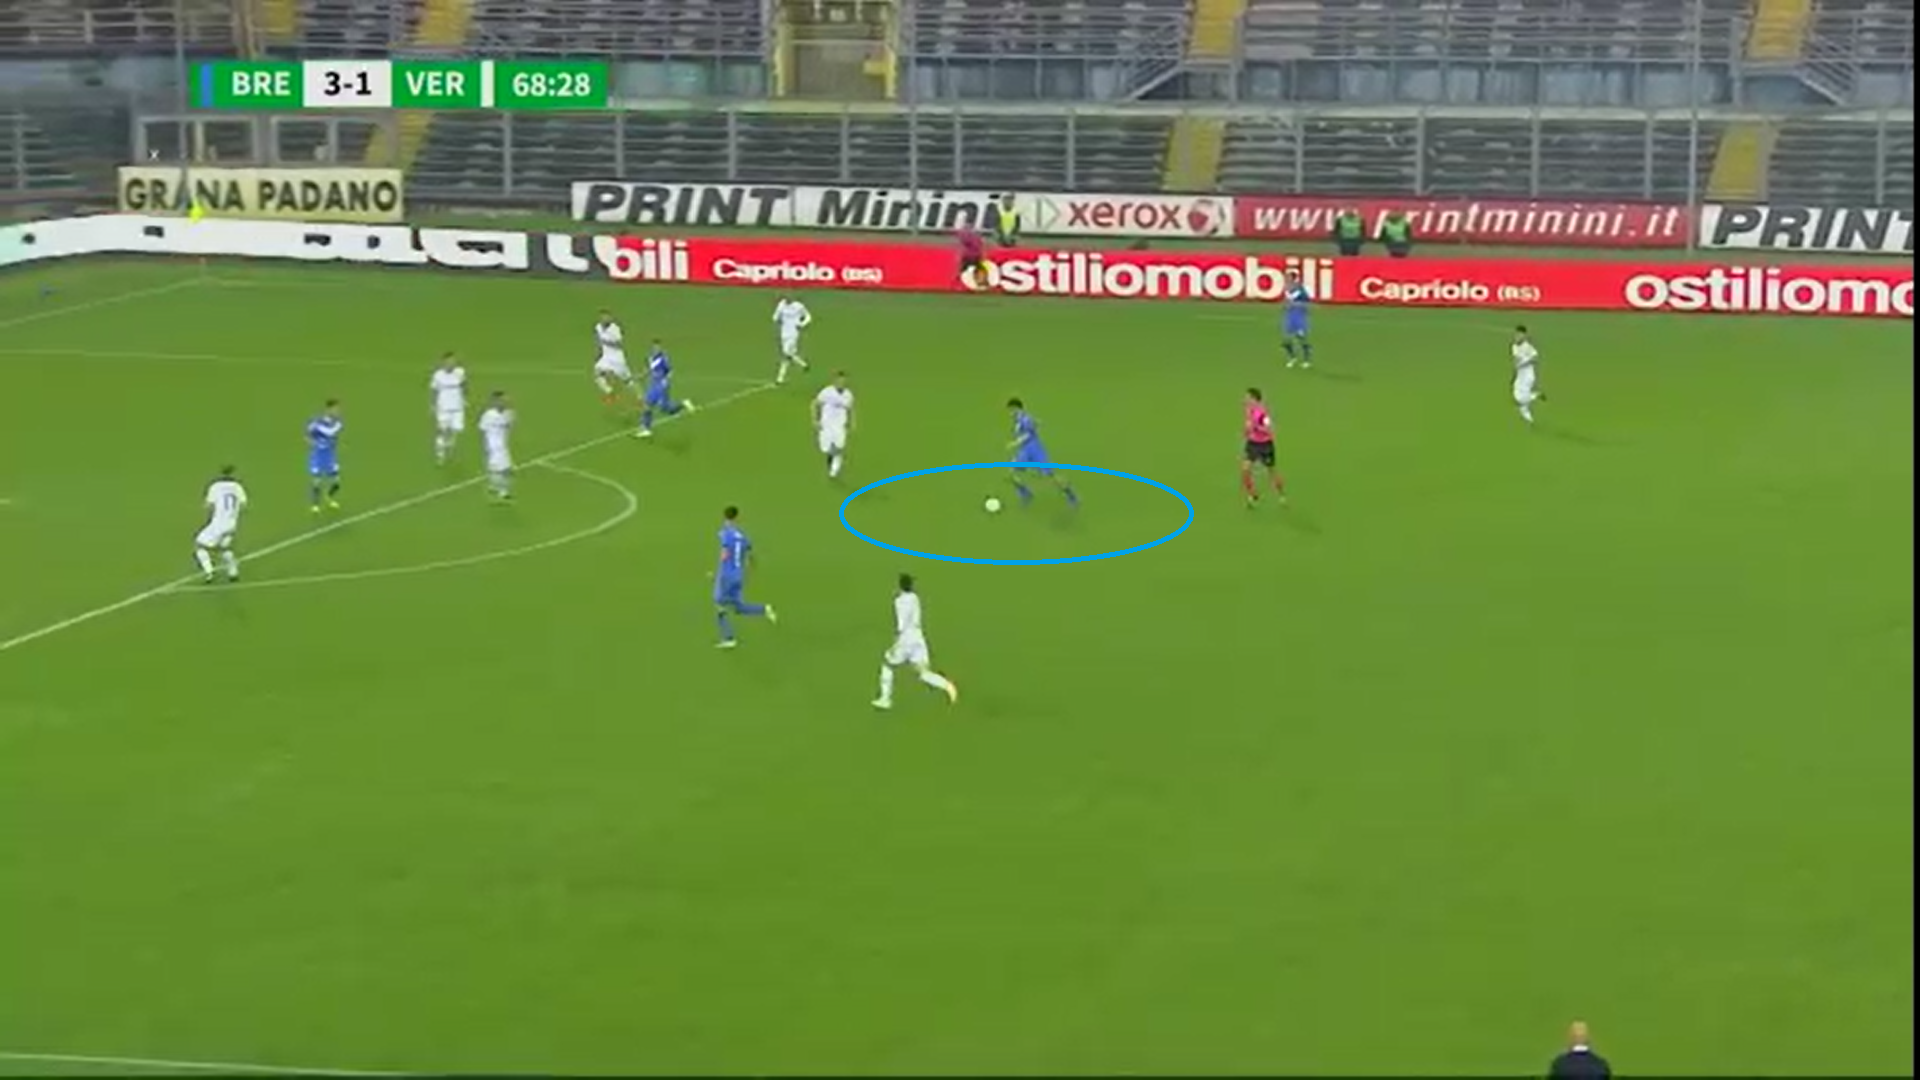 Ernesto Torregrossa 2019/20: scout report tactical analysis tactics